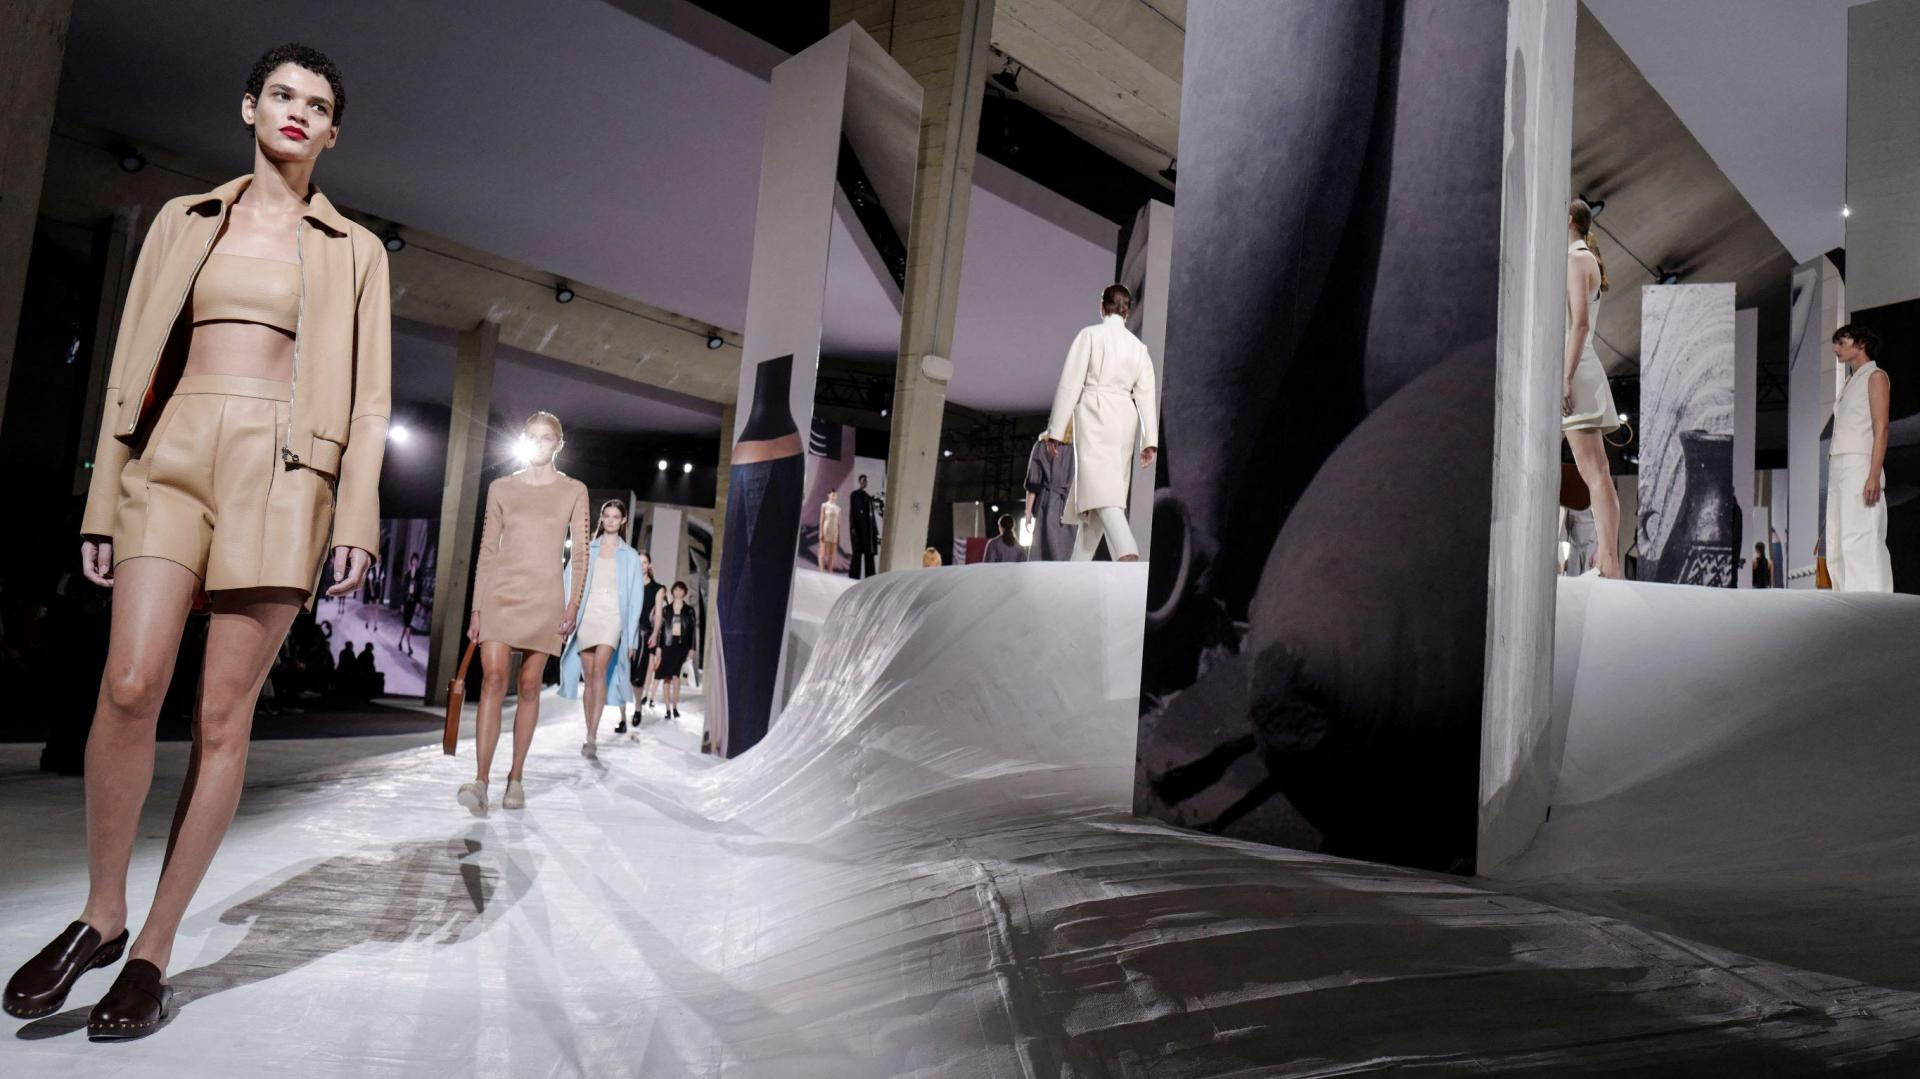 Models present creations by Hermes during the Womenswear Spring/Summer 2021 shows, as part of the Fashion Week in Paris on October 3 of last year. Photo: Lucas Barioulet/AFP